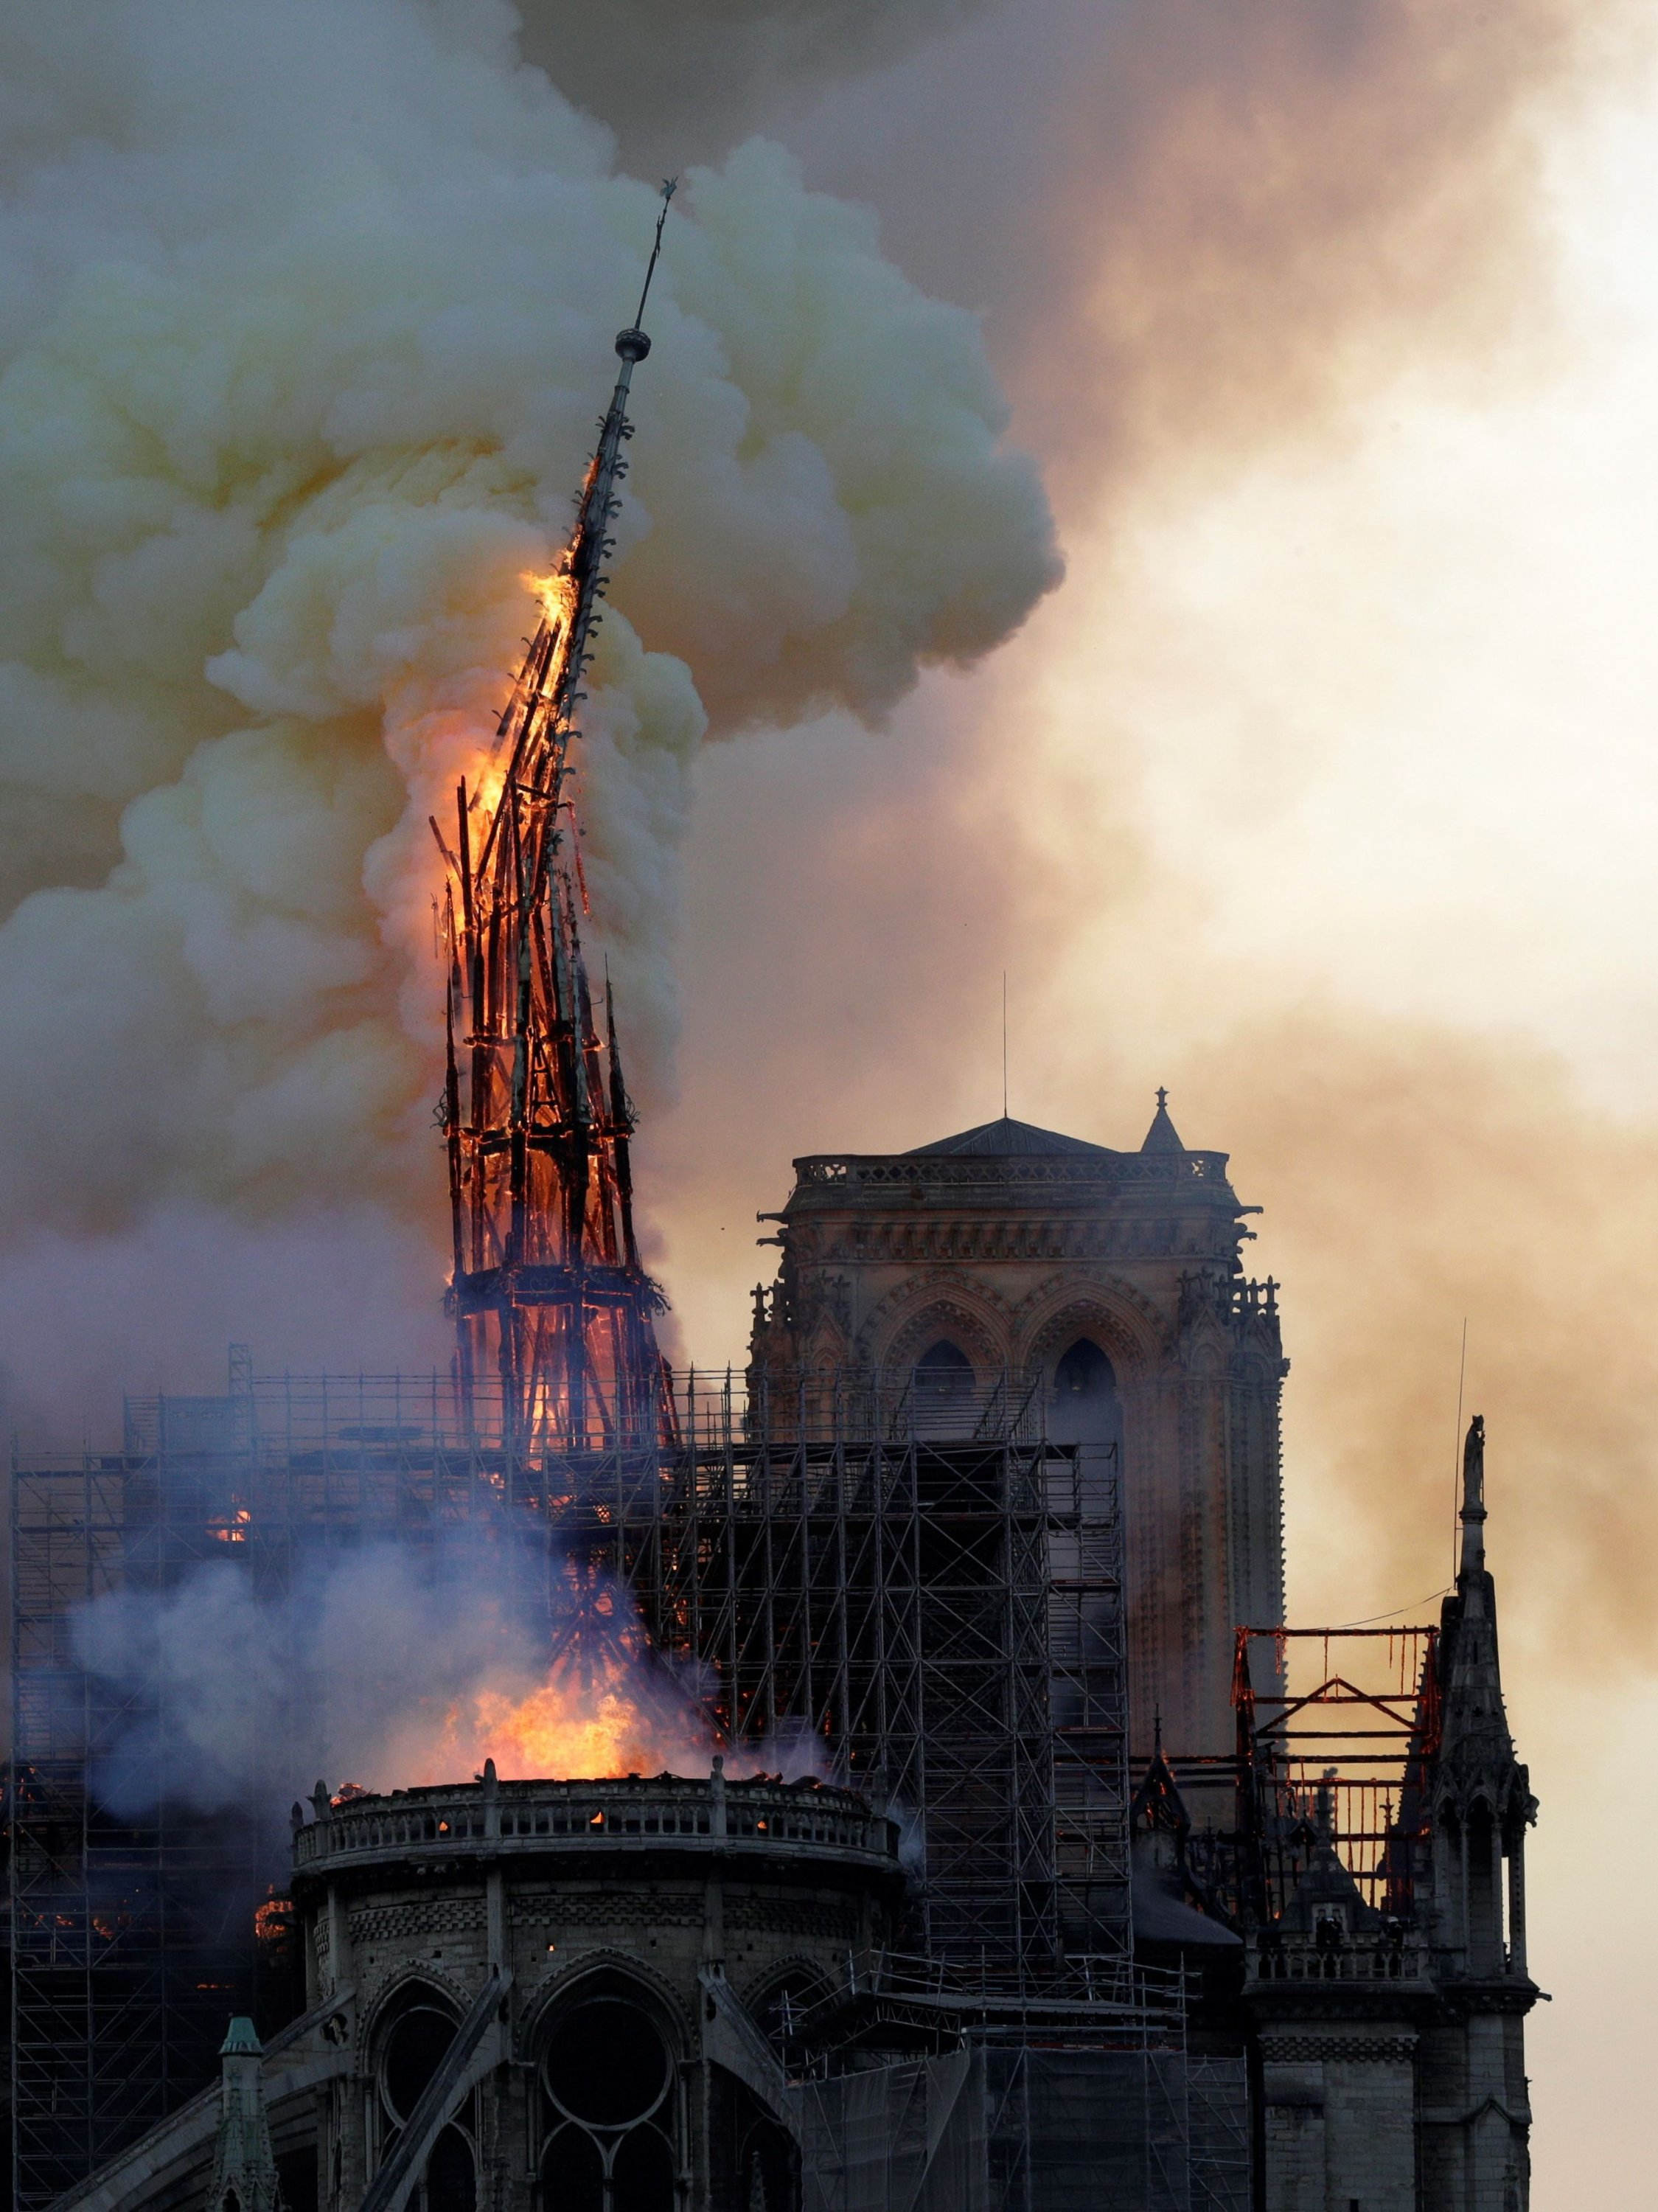 The steeple and spire of the landmark Notre-Dame Cathedral collapses as the cathedral is engulfed in flames in central Paris, France on April 15, 2019. (AFP Photo)